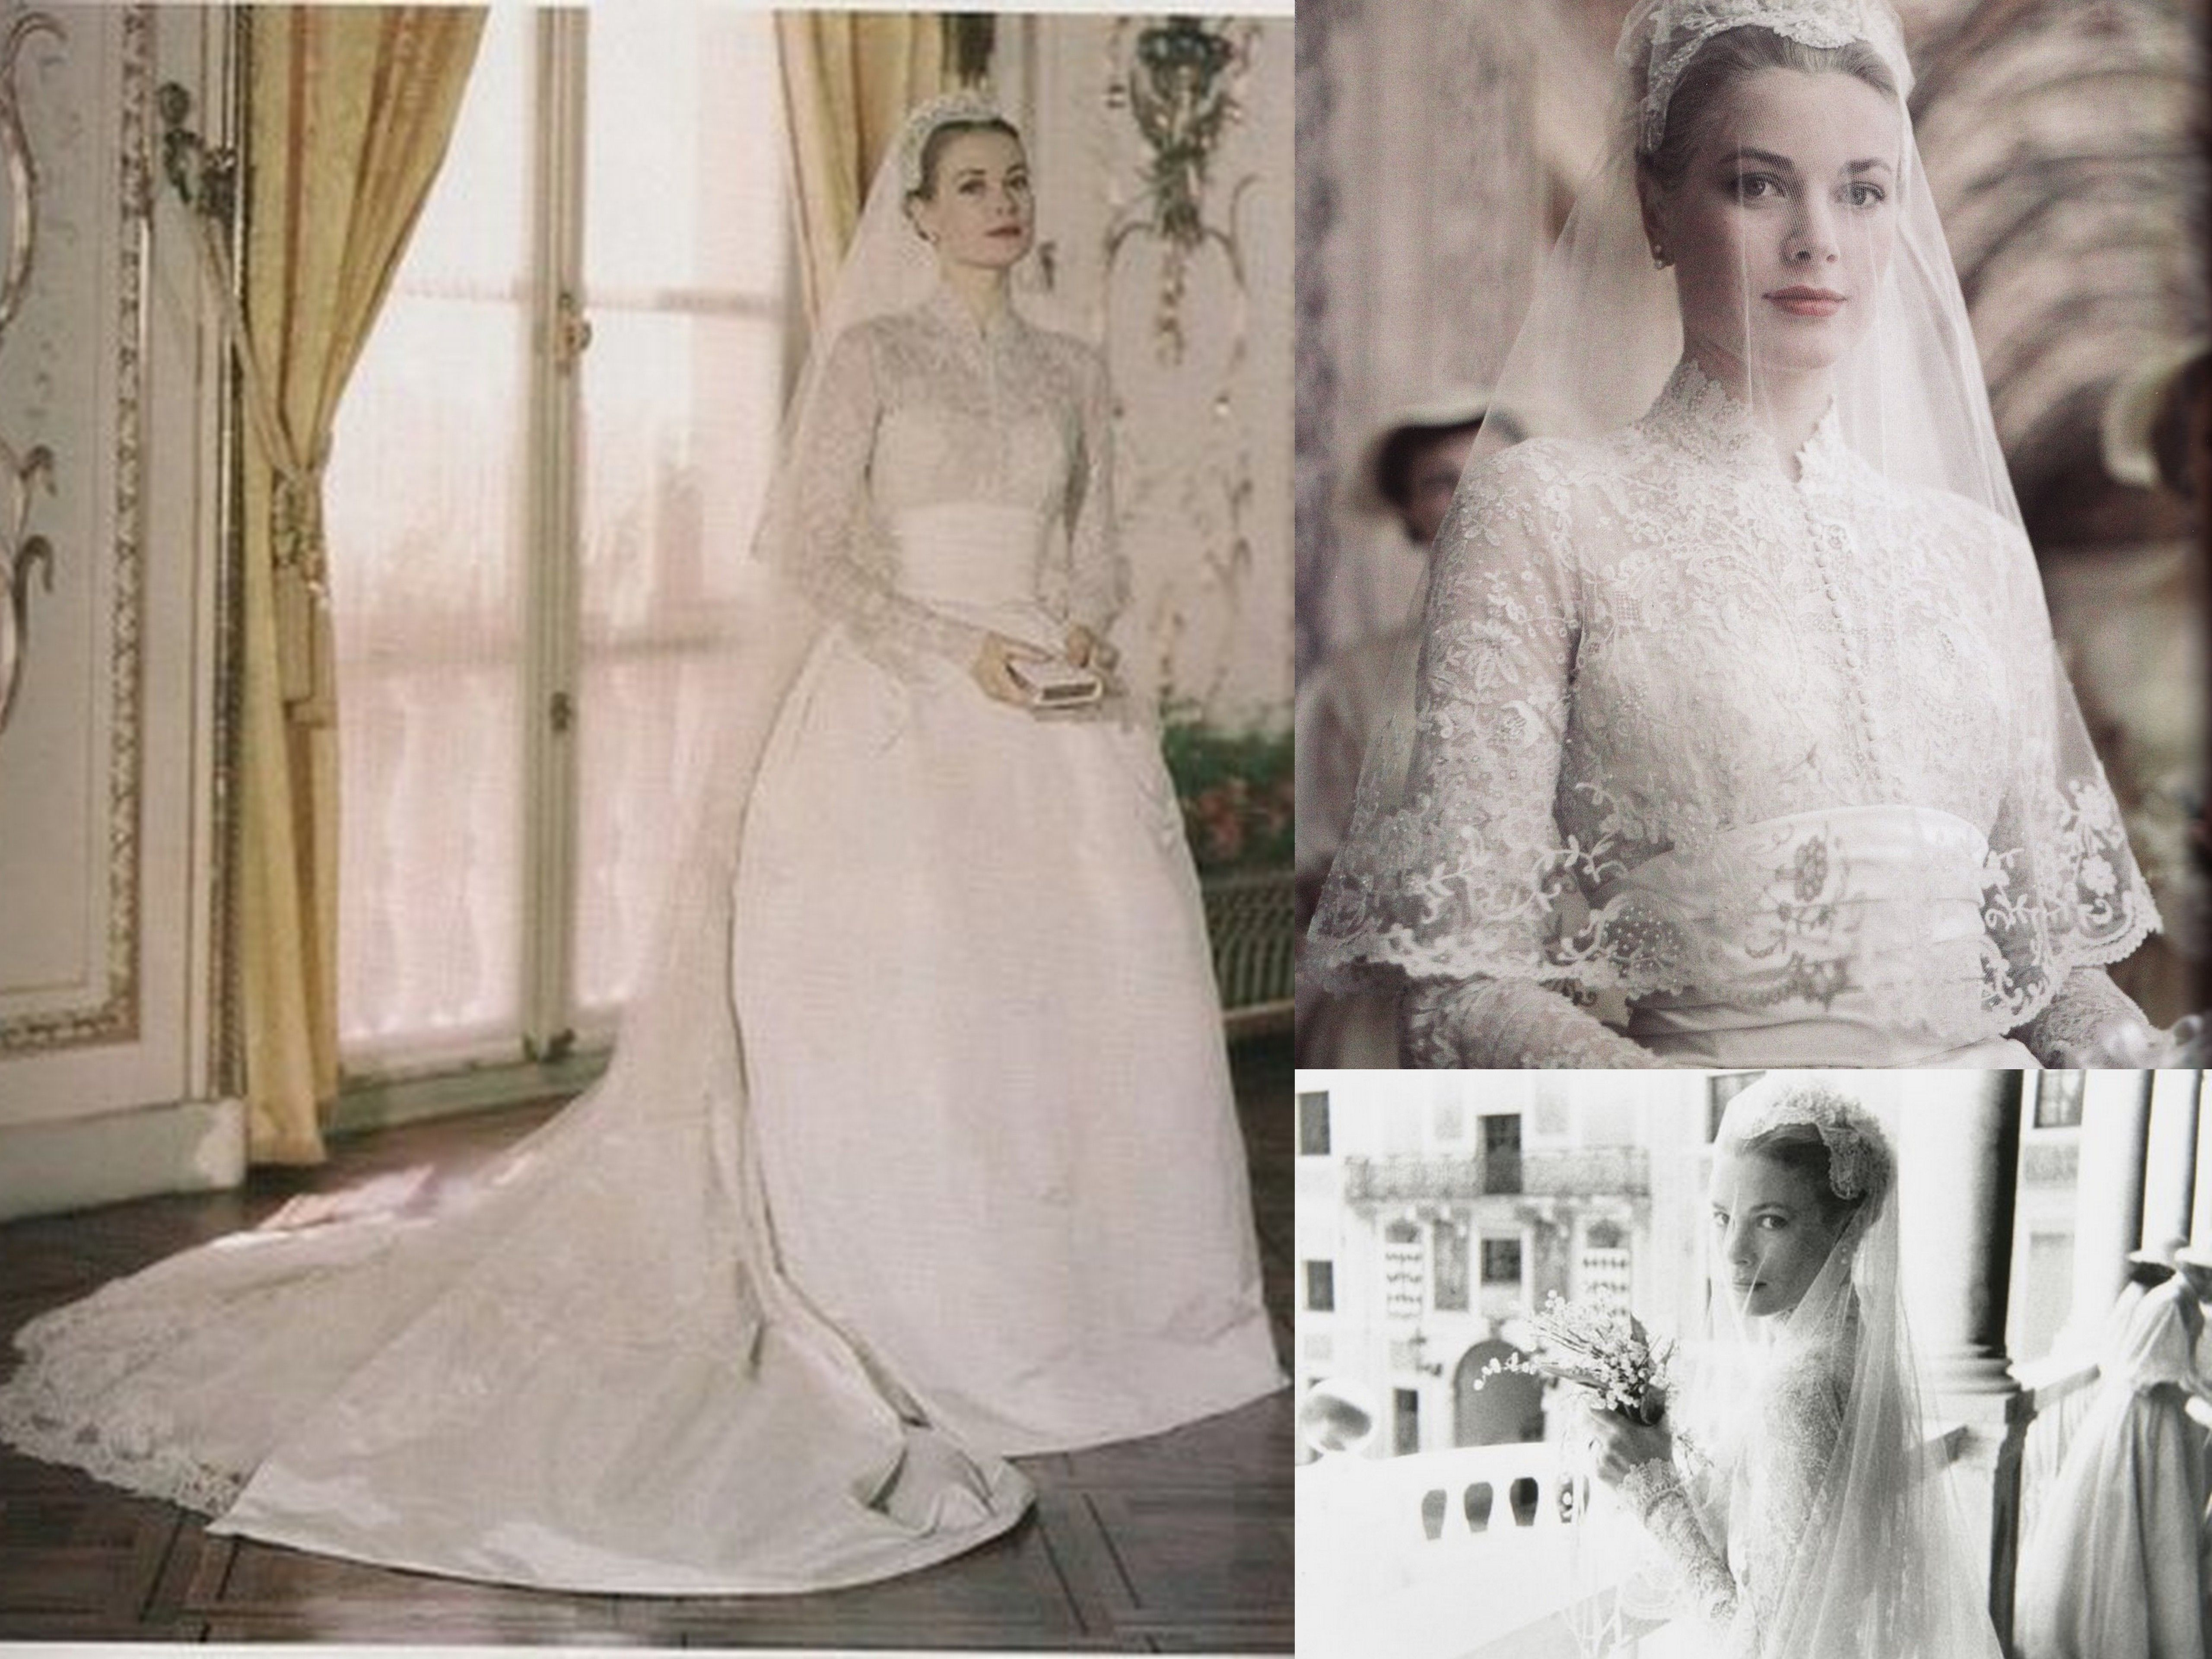 Princess Grace Wedding Dress It Was Designed By Helen Rose Of Mgm The Consisted A Bodice With An Attached Underbodice And Skirt Support: Wedding Dress Helen Rose At Reisefeber.org